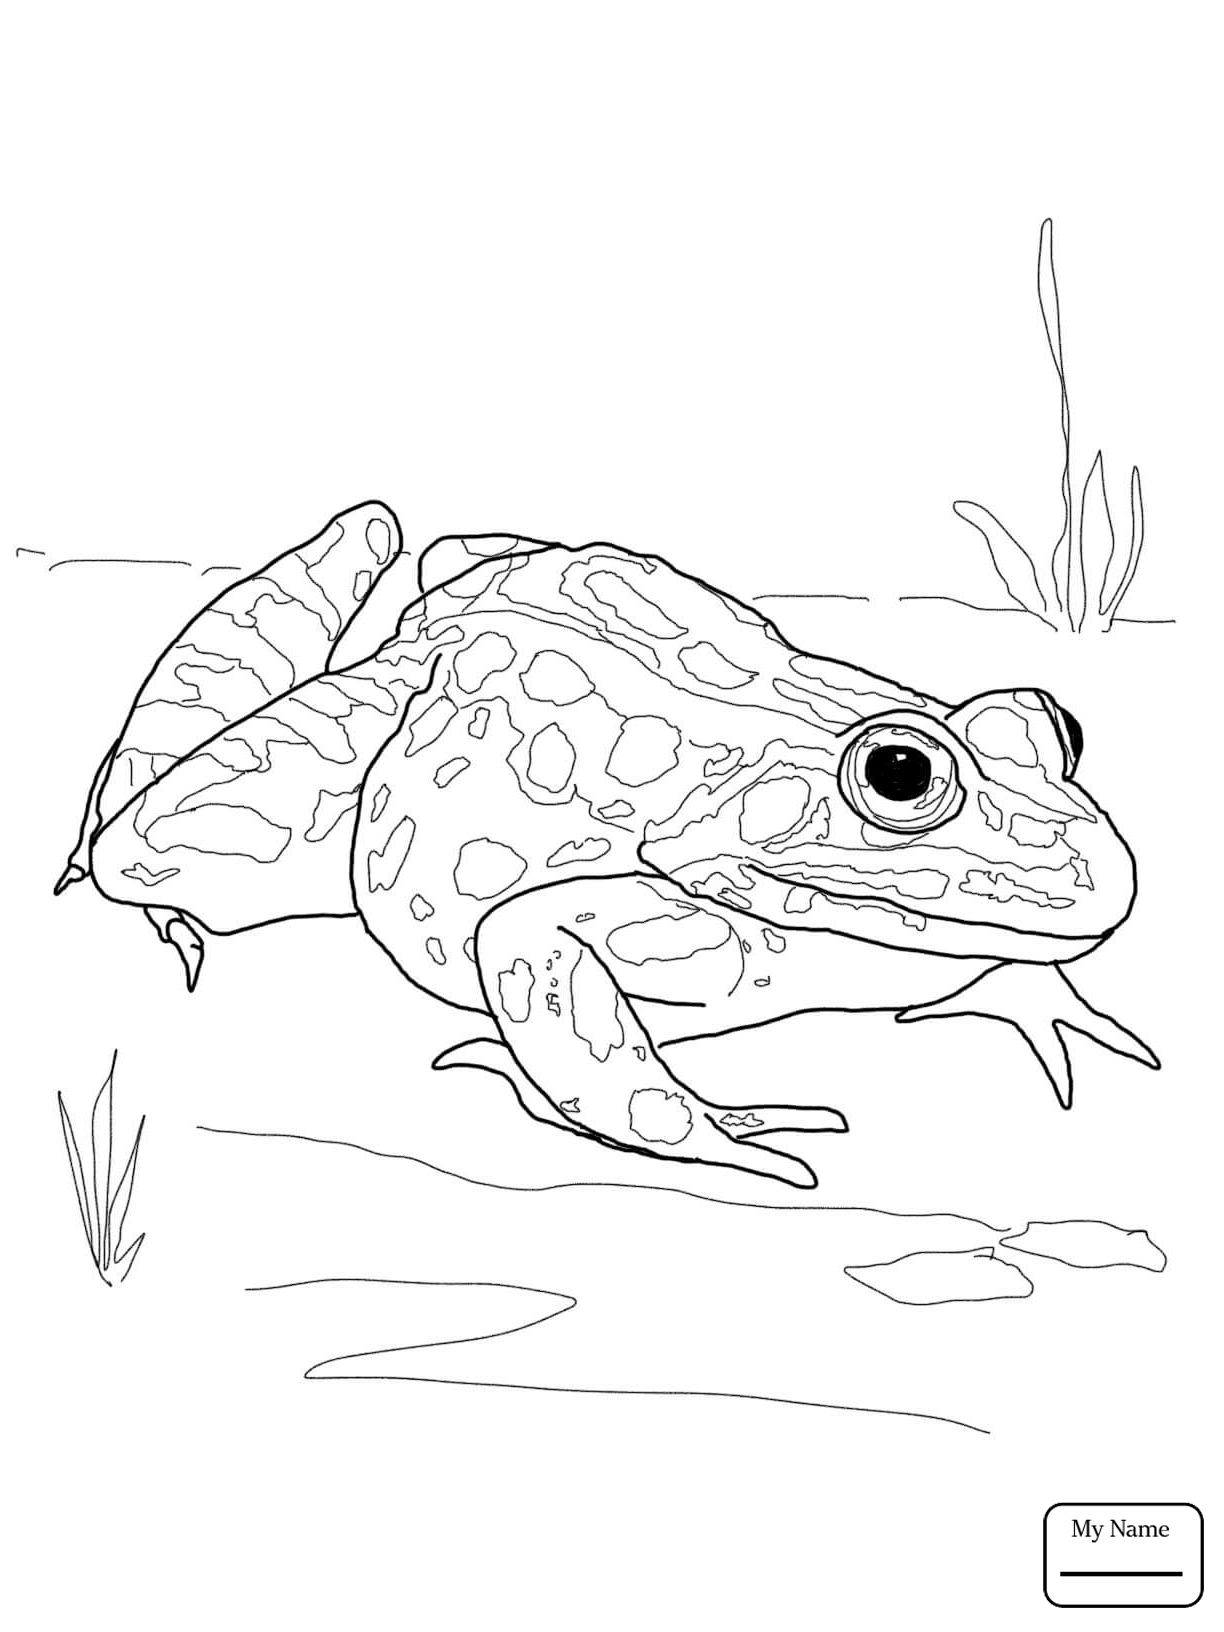 amphibian coloring pages | Spotted Salamander Drawing at GetDrawings.com | Free for ...